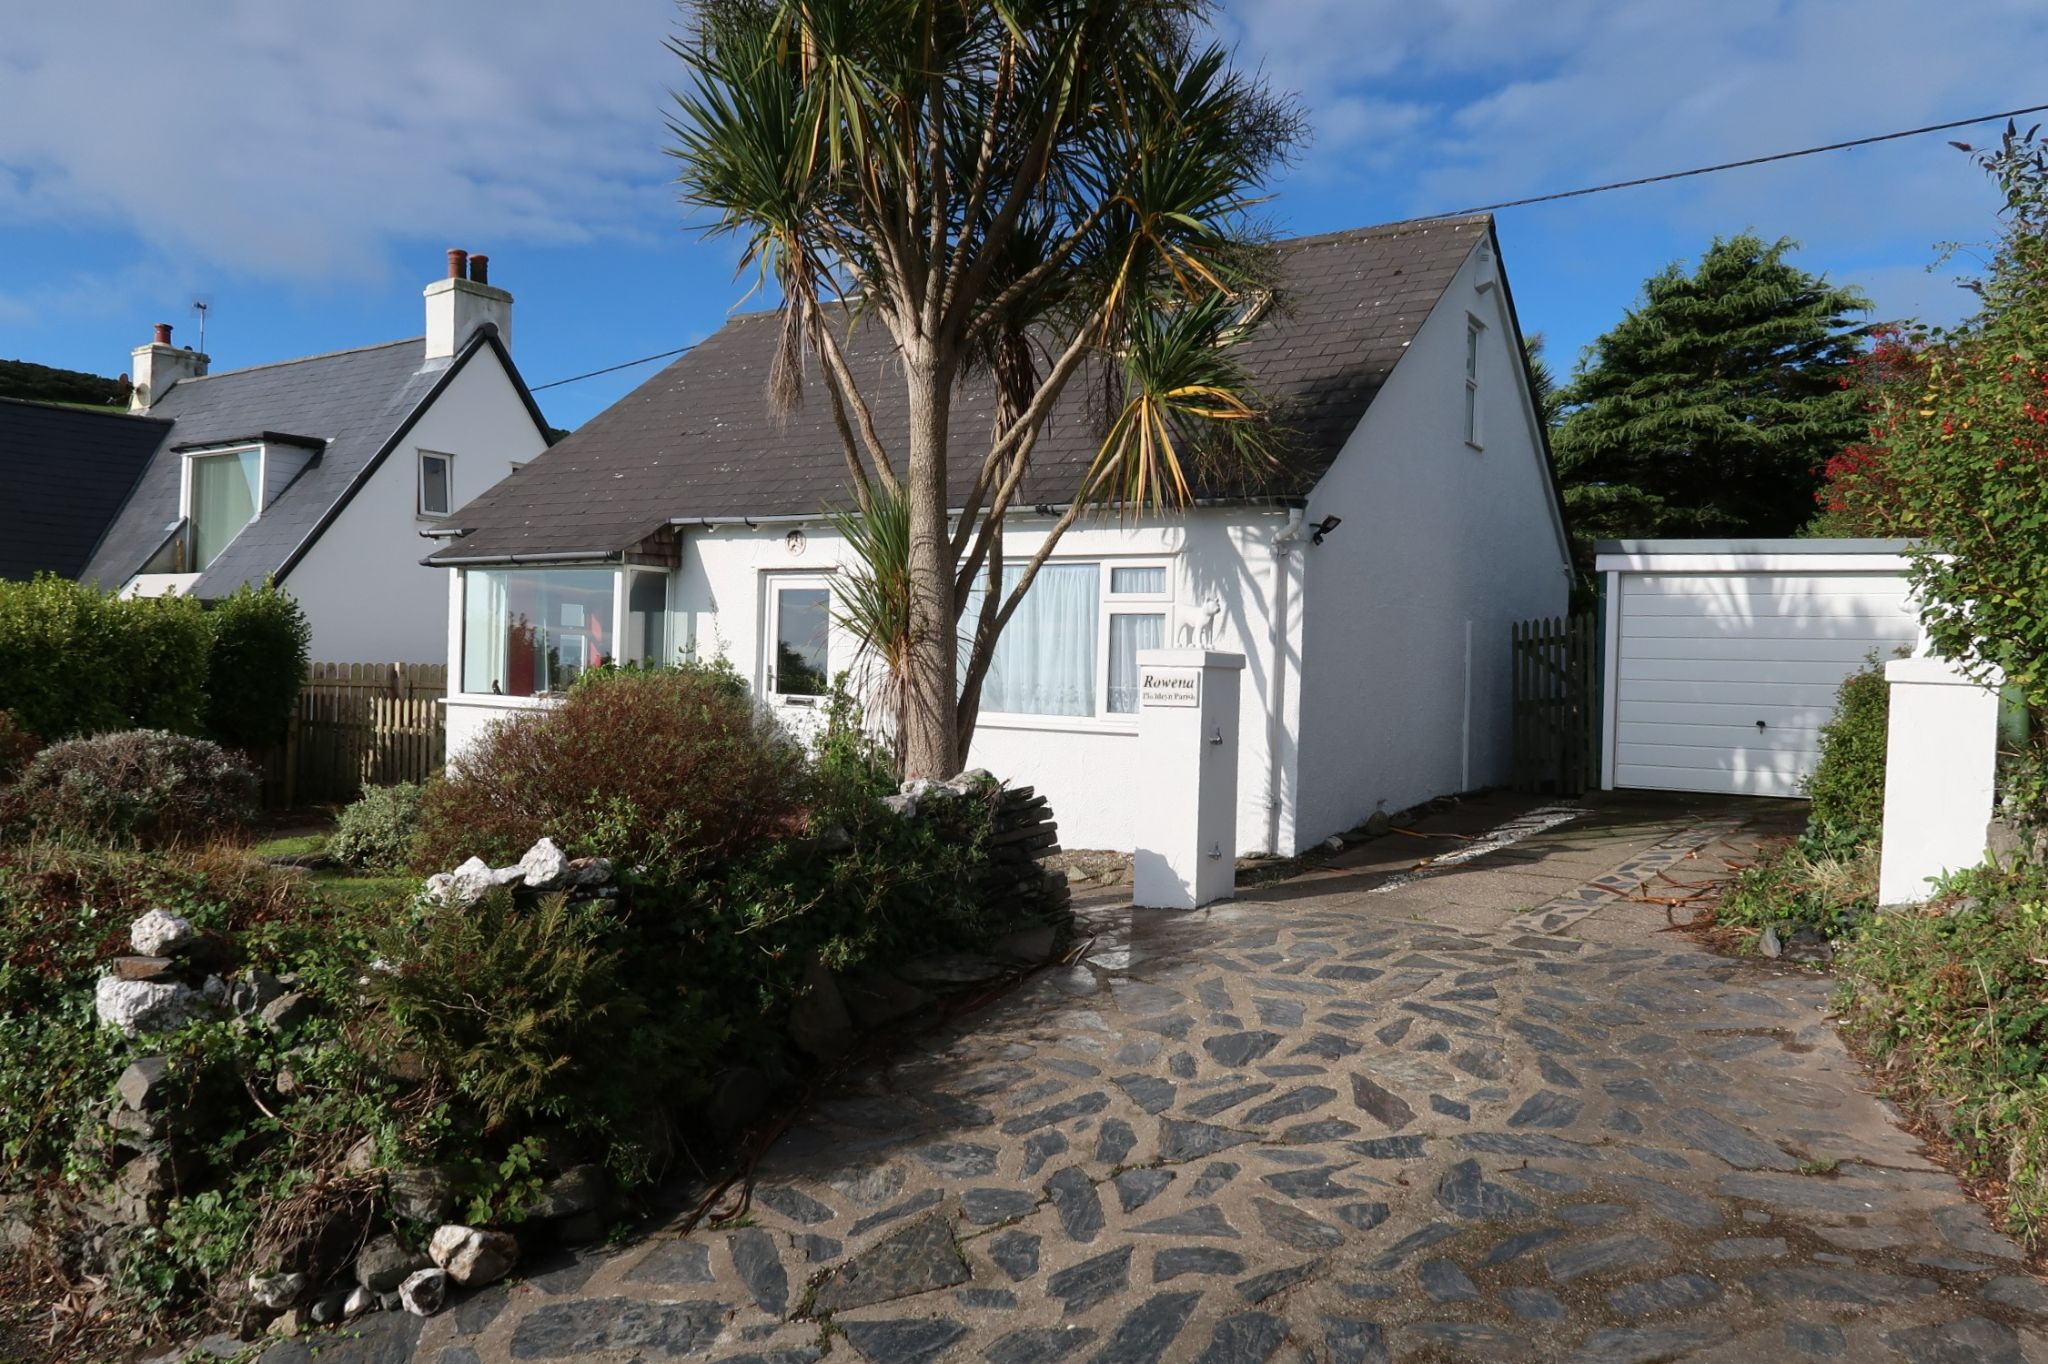 3 bedroom detached bungalow SSTC in Port St Mary - Photograph 1